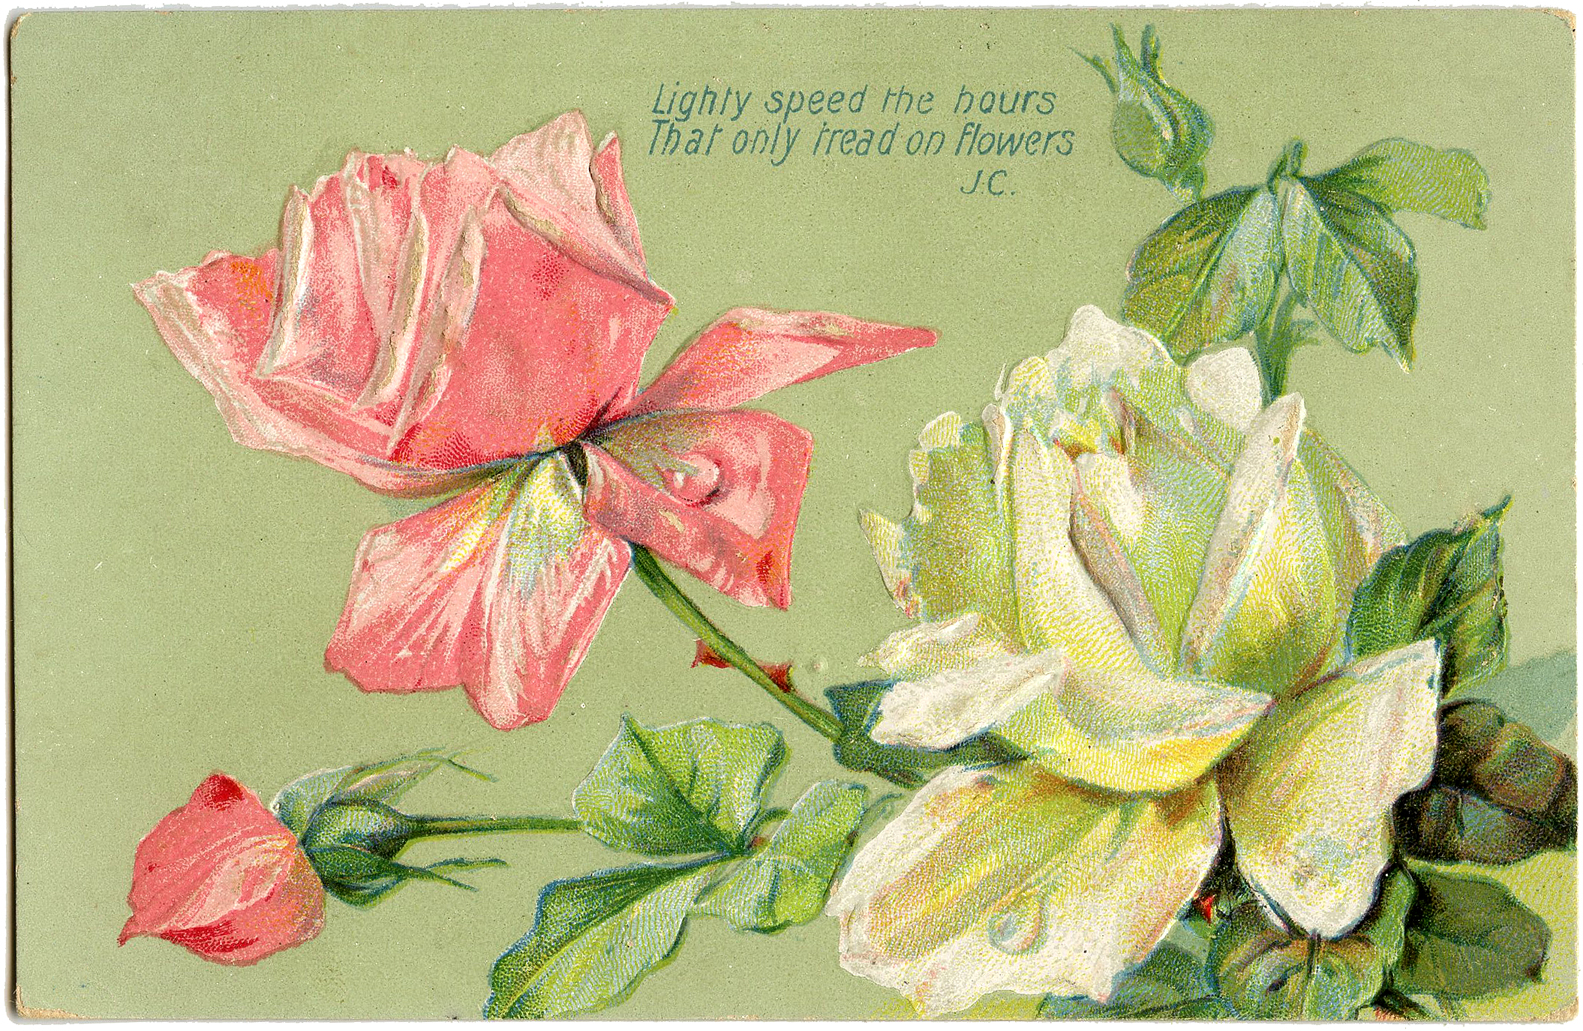 Pin by Melanie Racki Adamov on ....Favourites.... in 2020 | Flower graphic,  Floral watercolor, Frame clipart